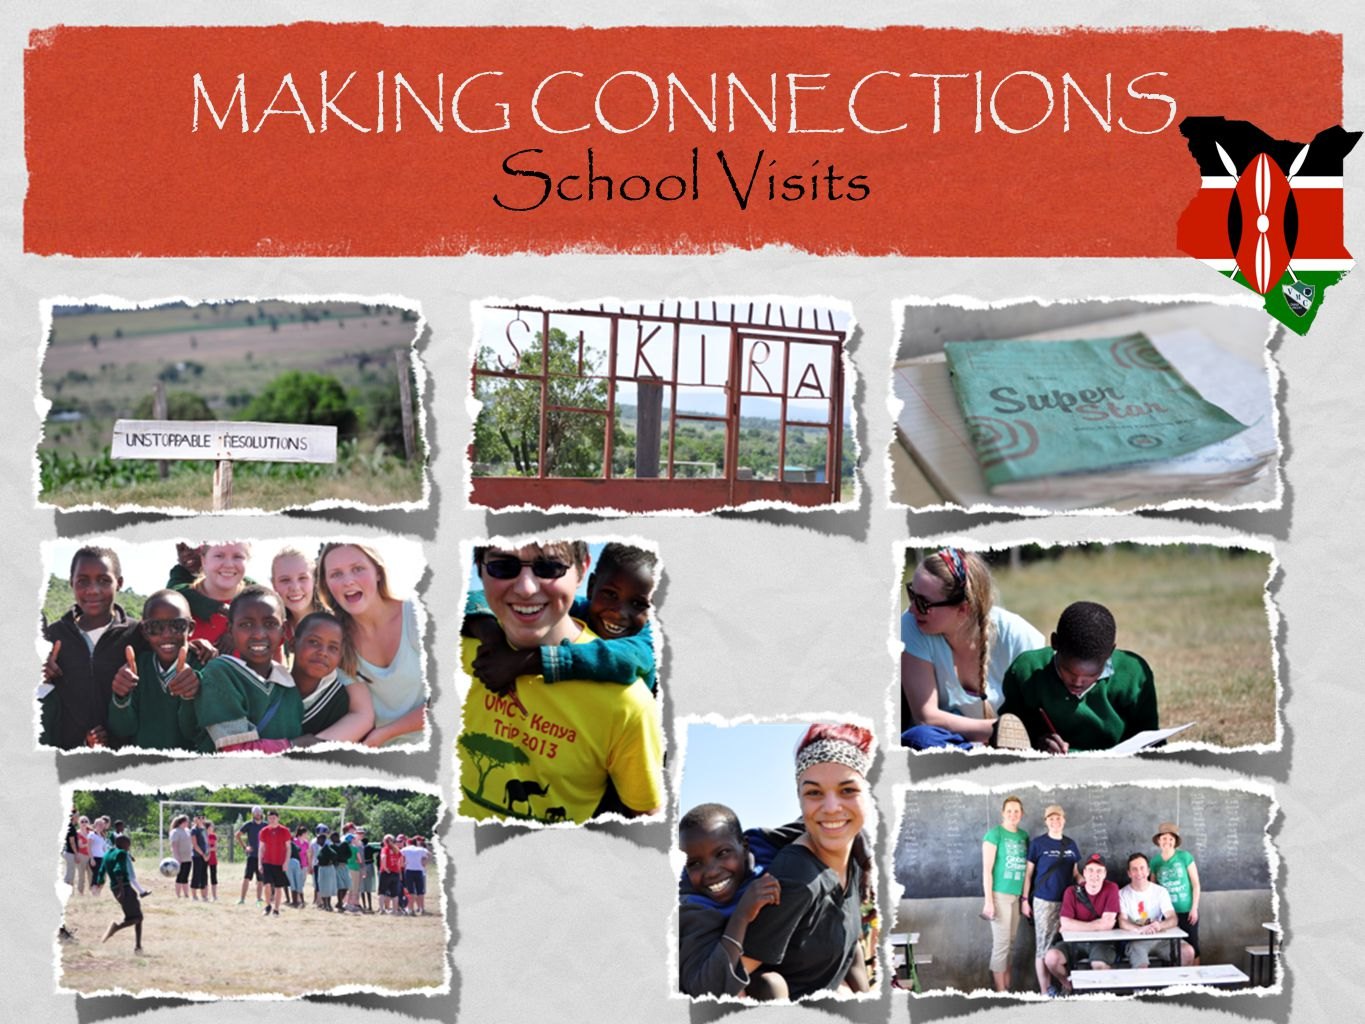 MAKING CONNECTIONS School Visits